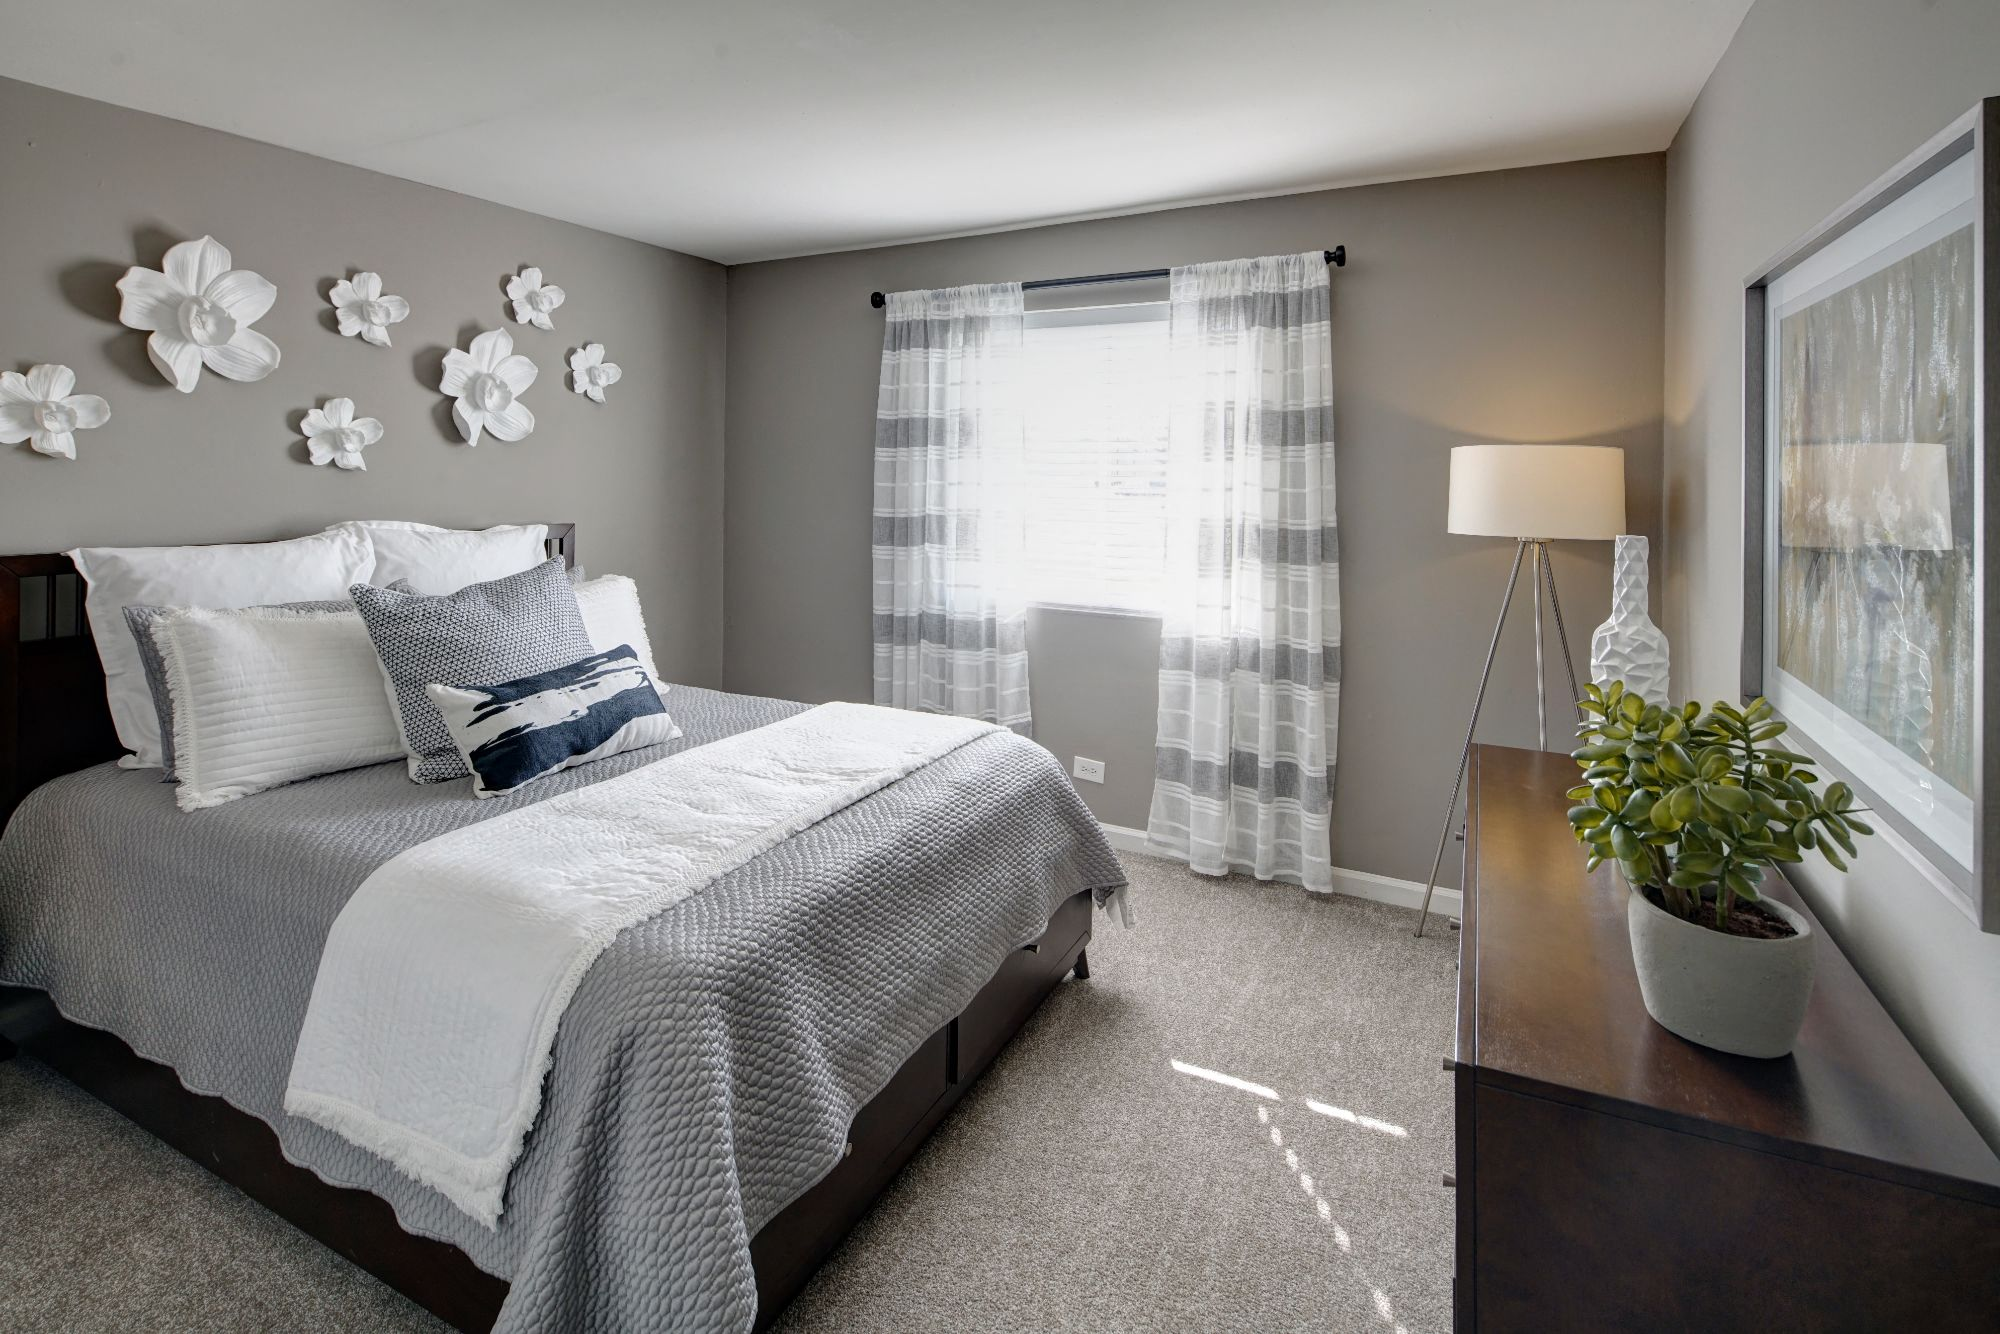 Gorgeous Bedroom Designs at Carol Stream Crossing, Carol Stream, Illinois